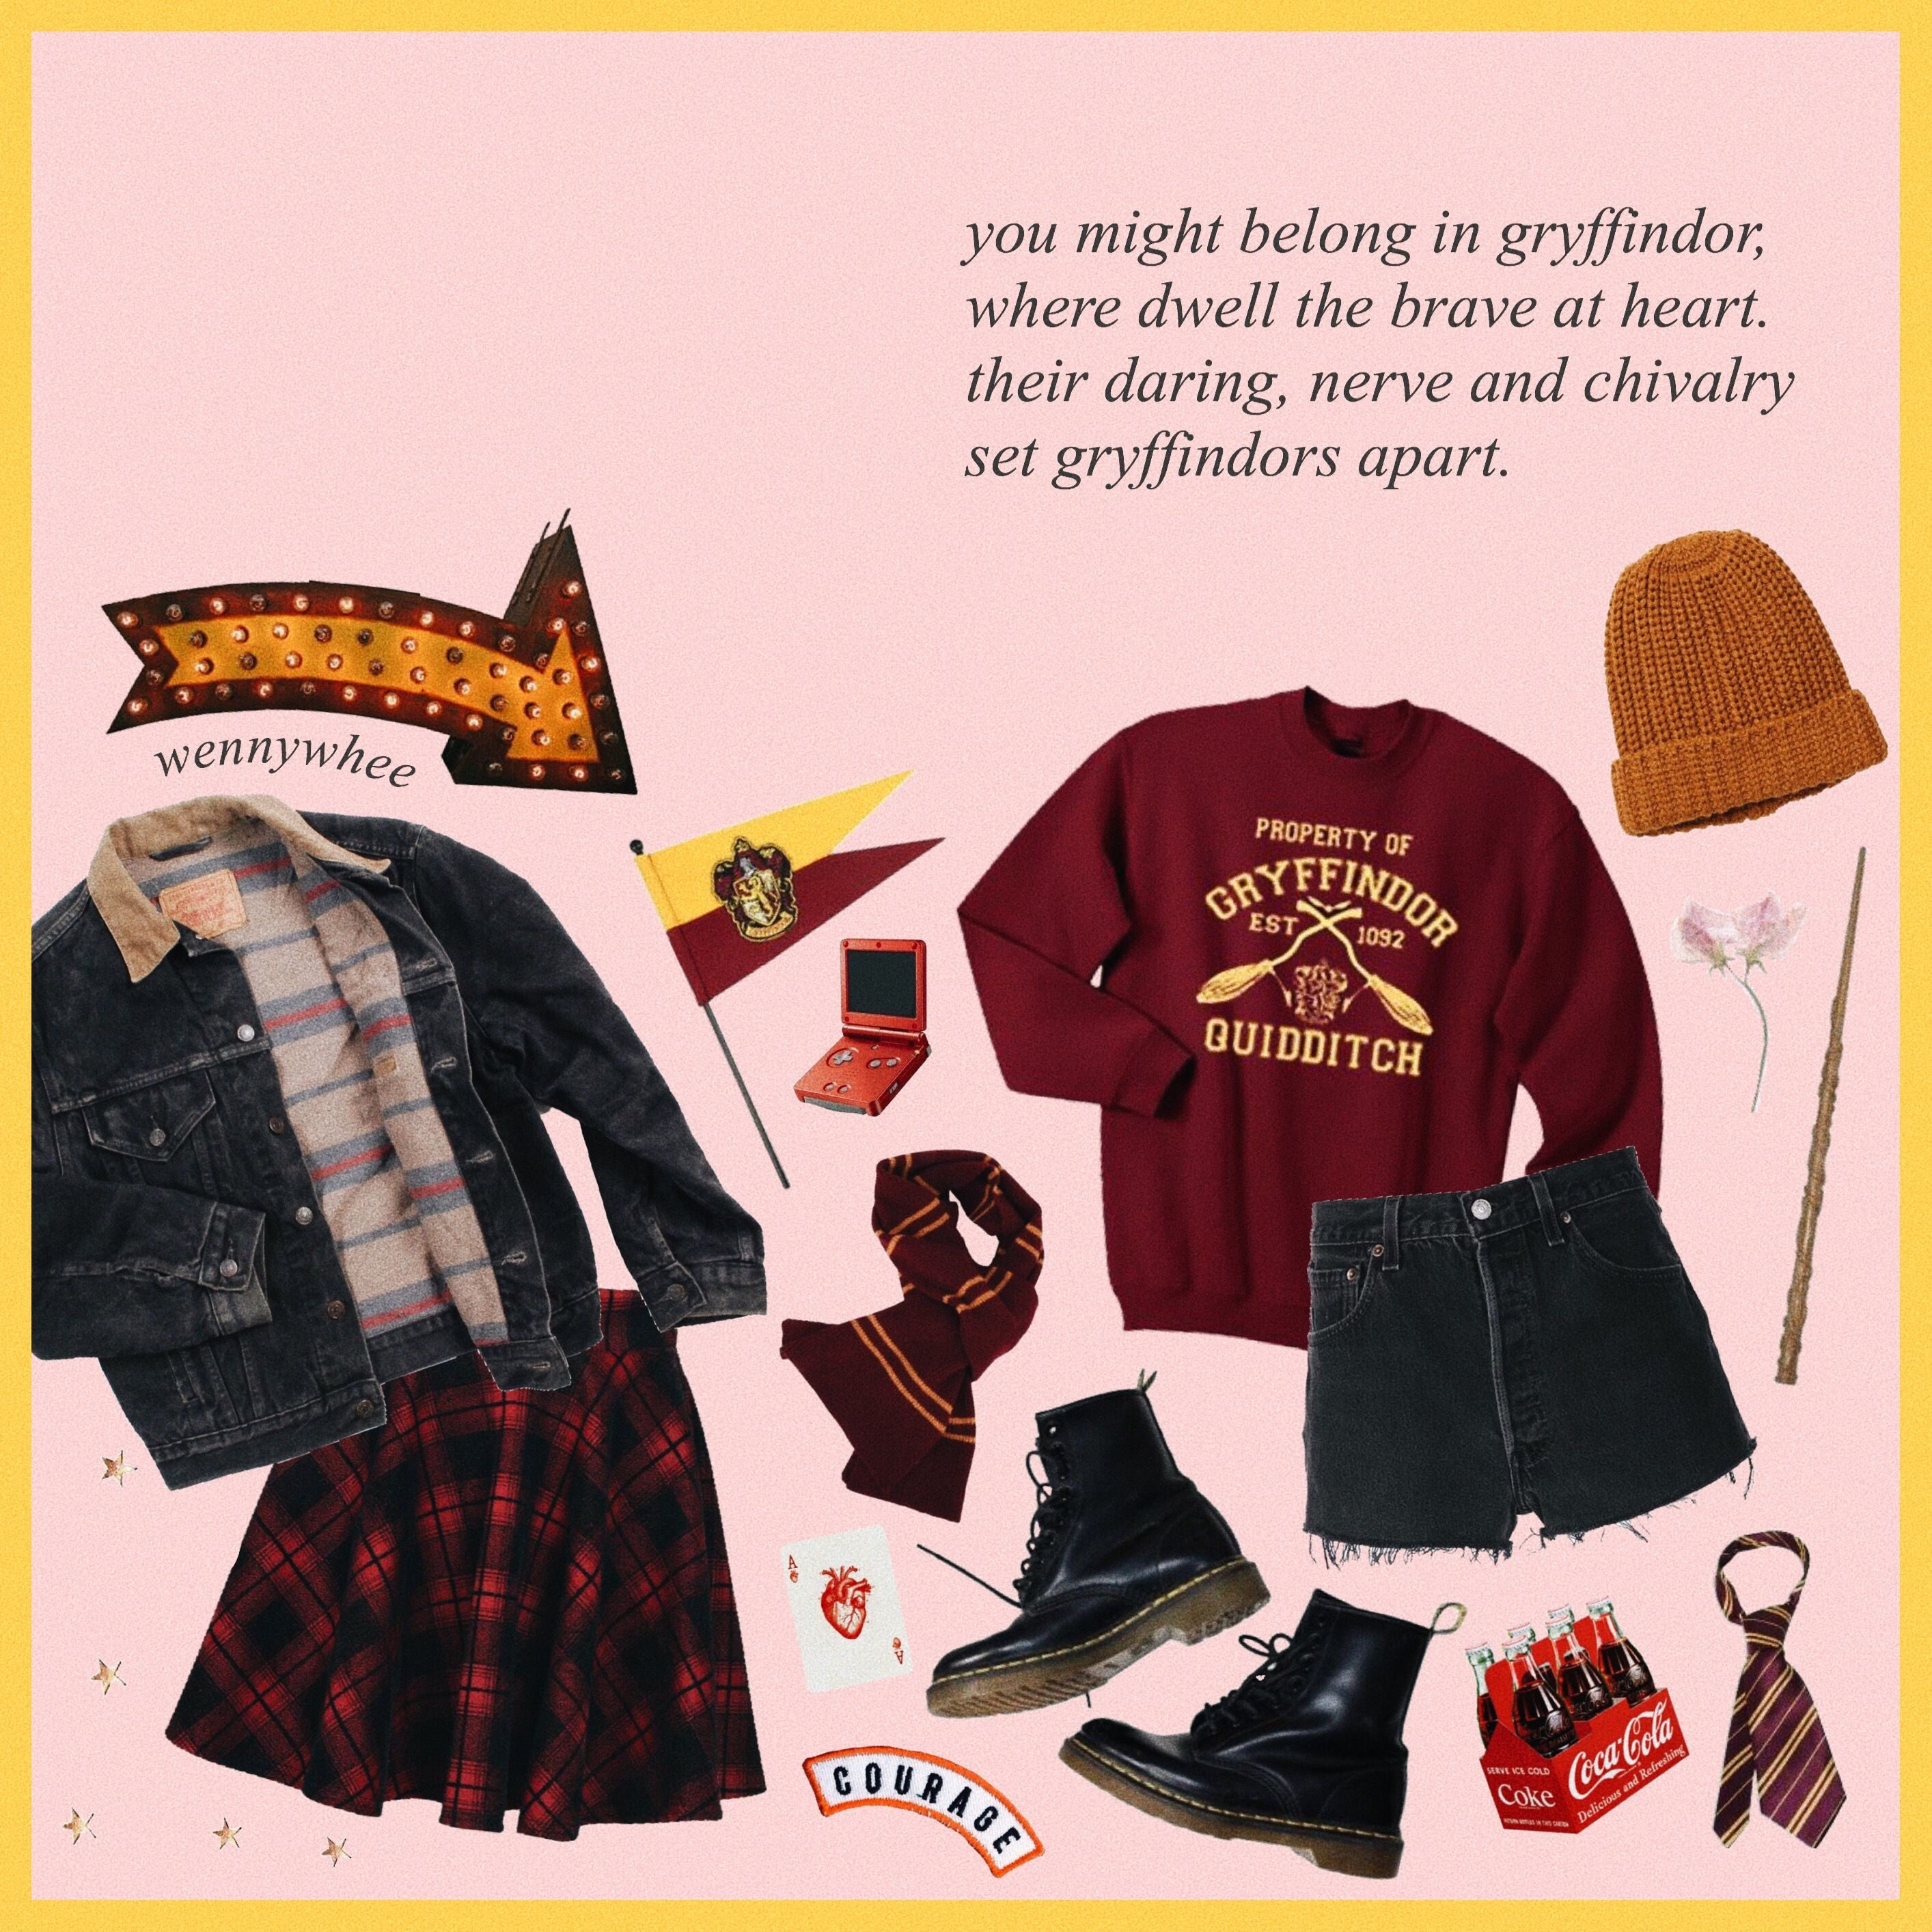 Gryffindor Mood Board Outfit Inspiration Aesthetic Harry Potter Outfits Gryffindor Outfit Hogwarts Outfits Gryffindor